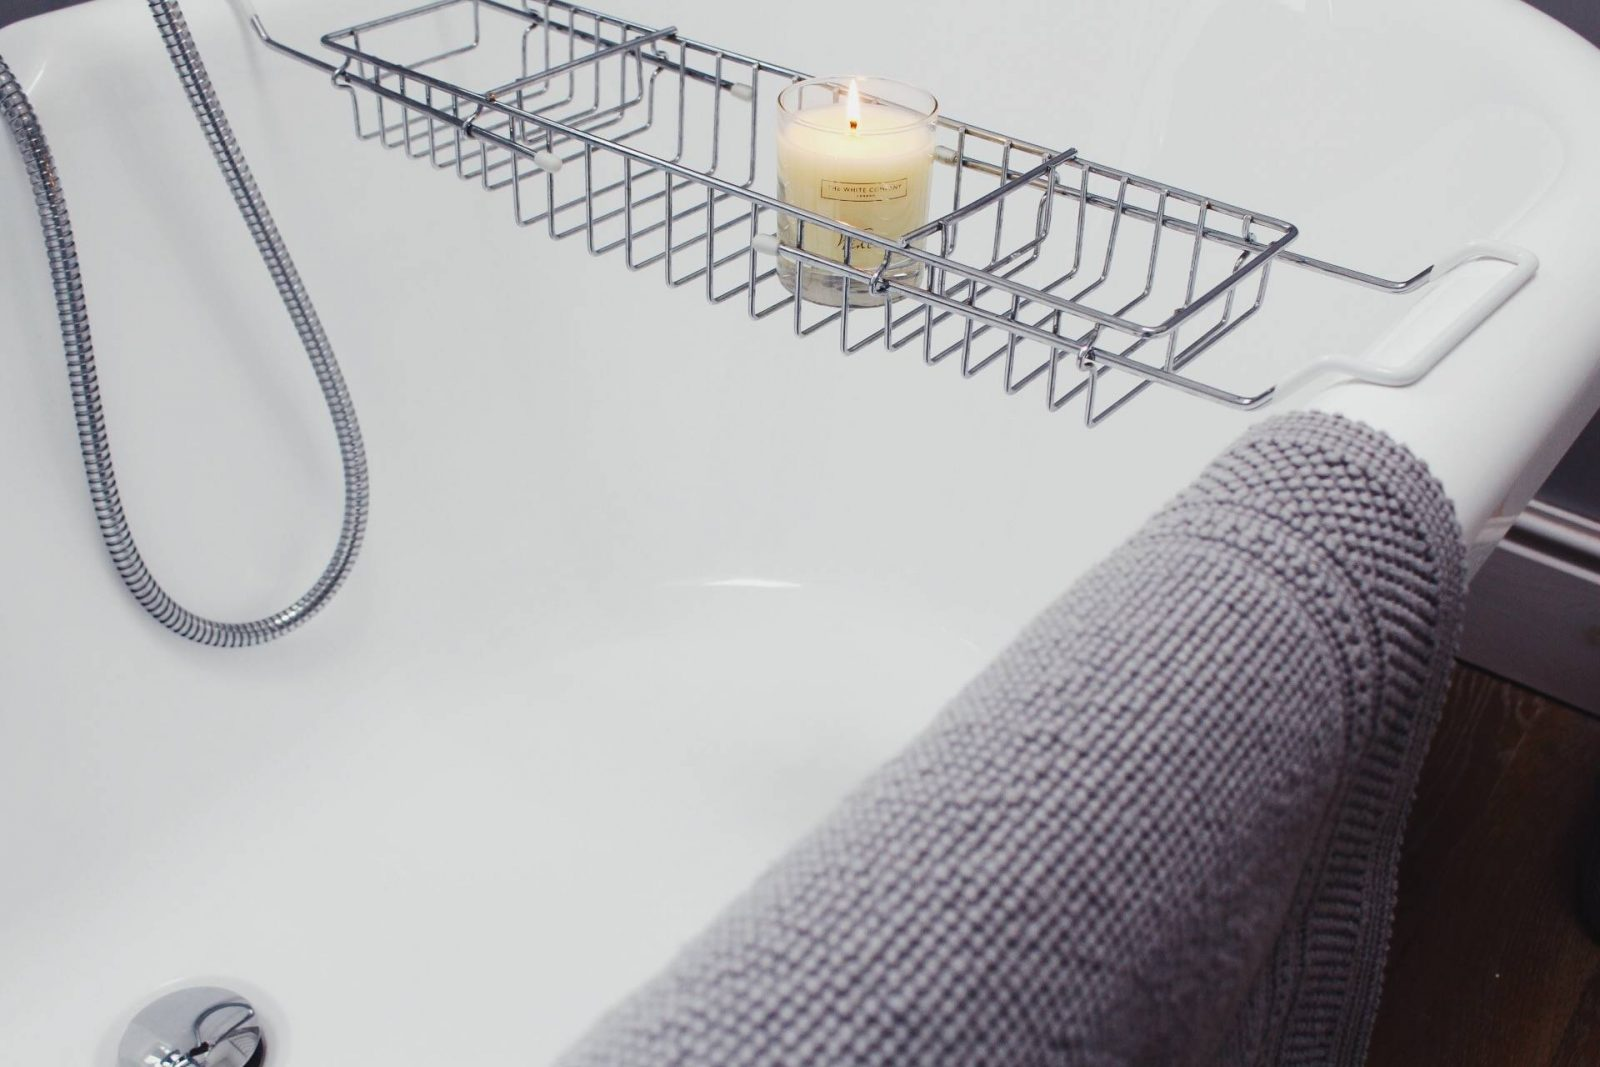 The White Company, Bathroom, Sale, Interiors, Home Design, House Renovation, Winter, Candle, Roll Top Bath